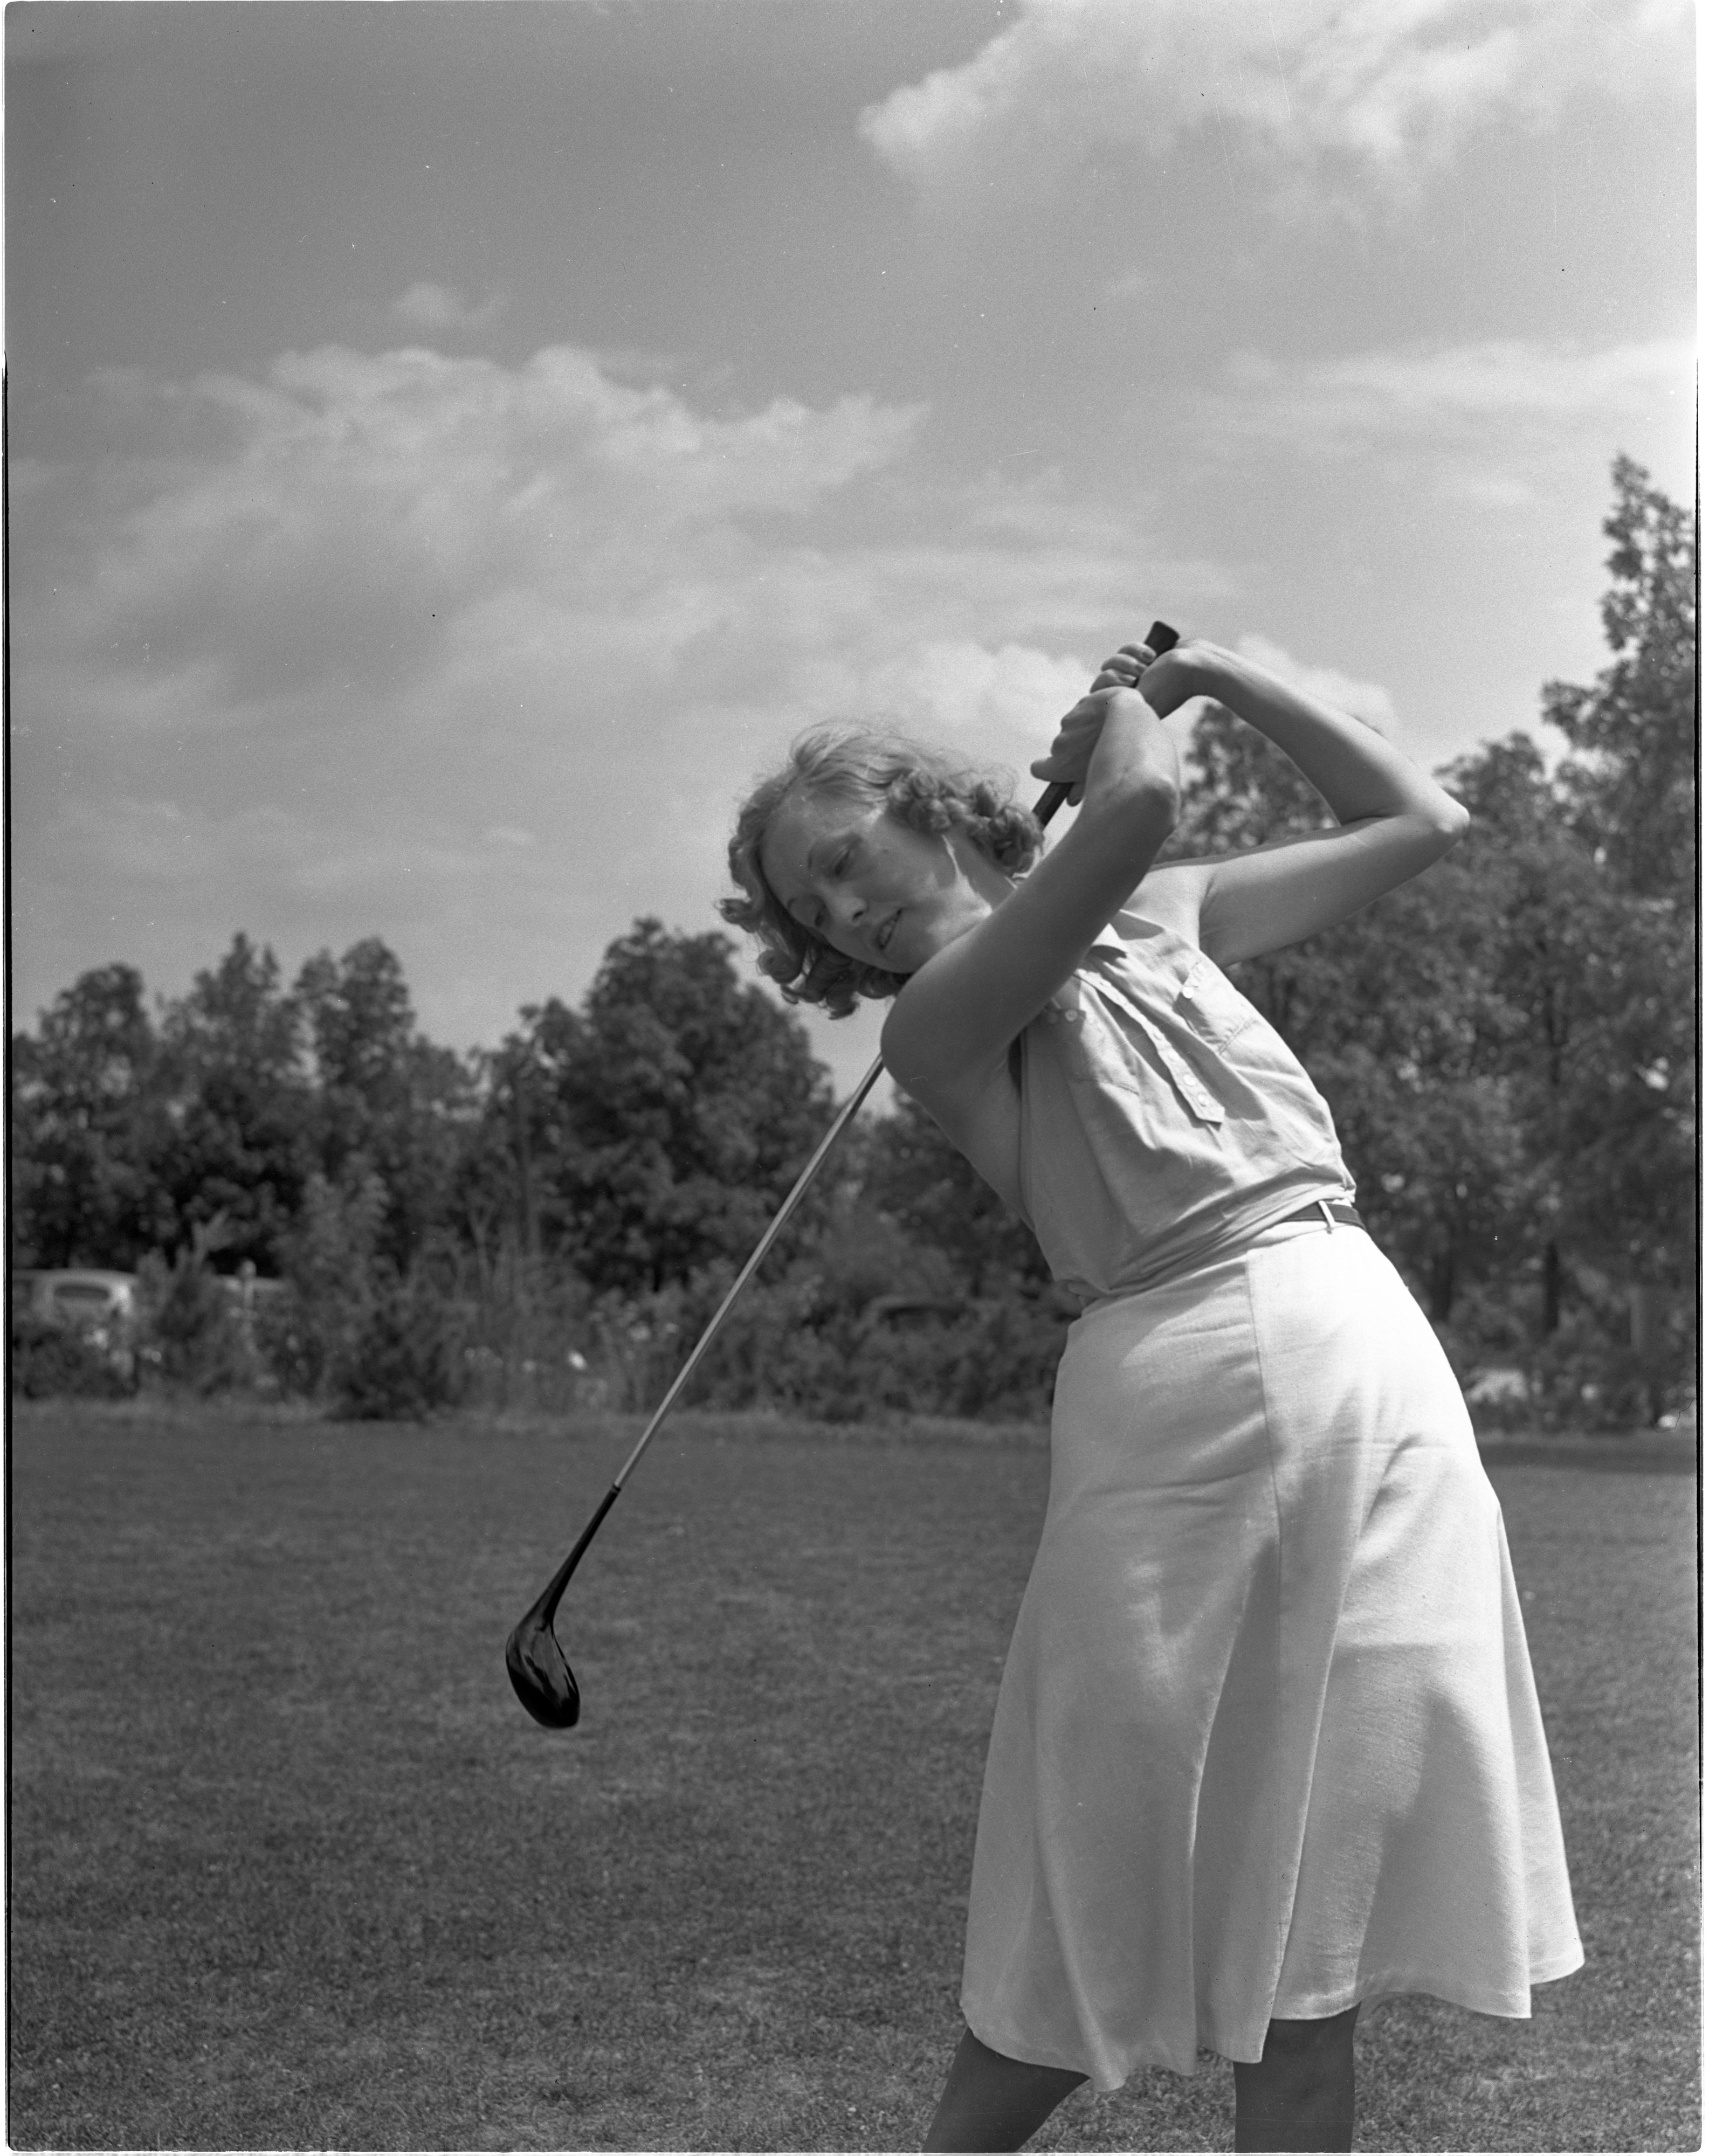 Josephine Lange In The Women's City Golf Tournament Qualifying Rounds At Barton Hills, July 1939 image